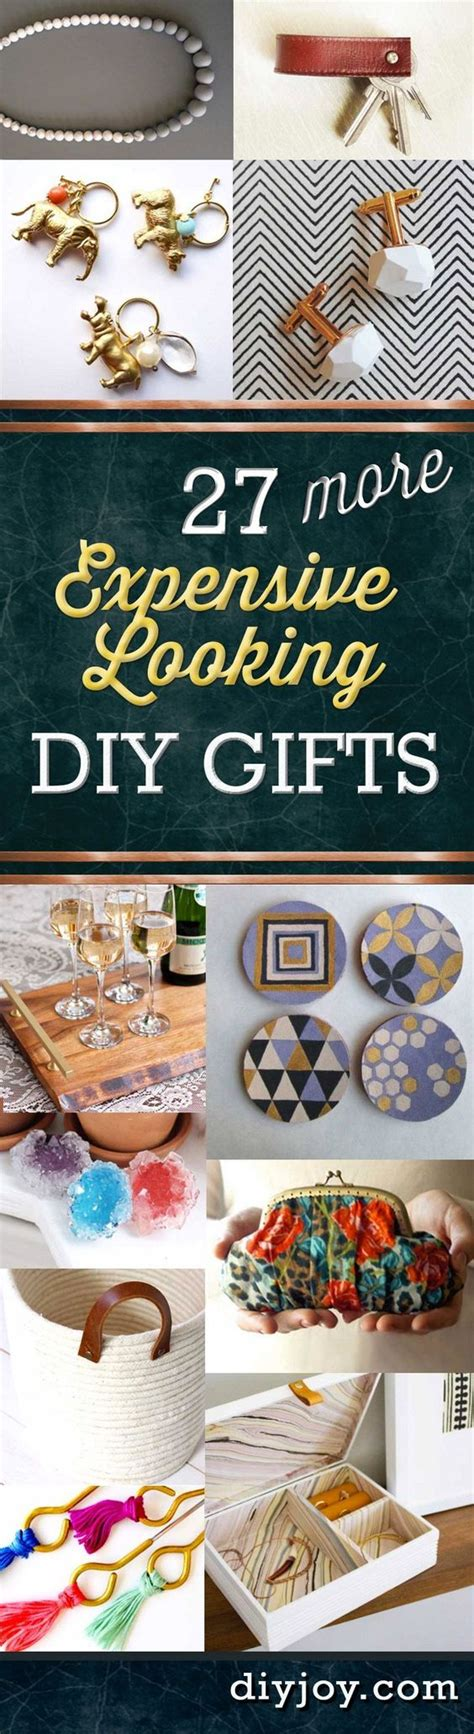 best expensive gifts for boyfriend 27 more expensive looking inexpensive gifts birthdays ideas for gifts and ideas for